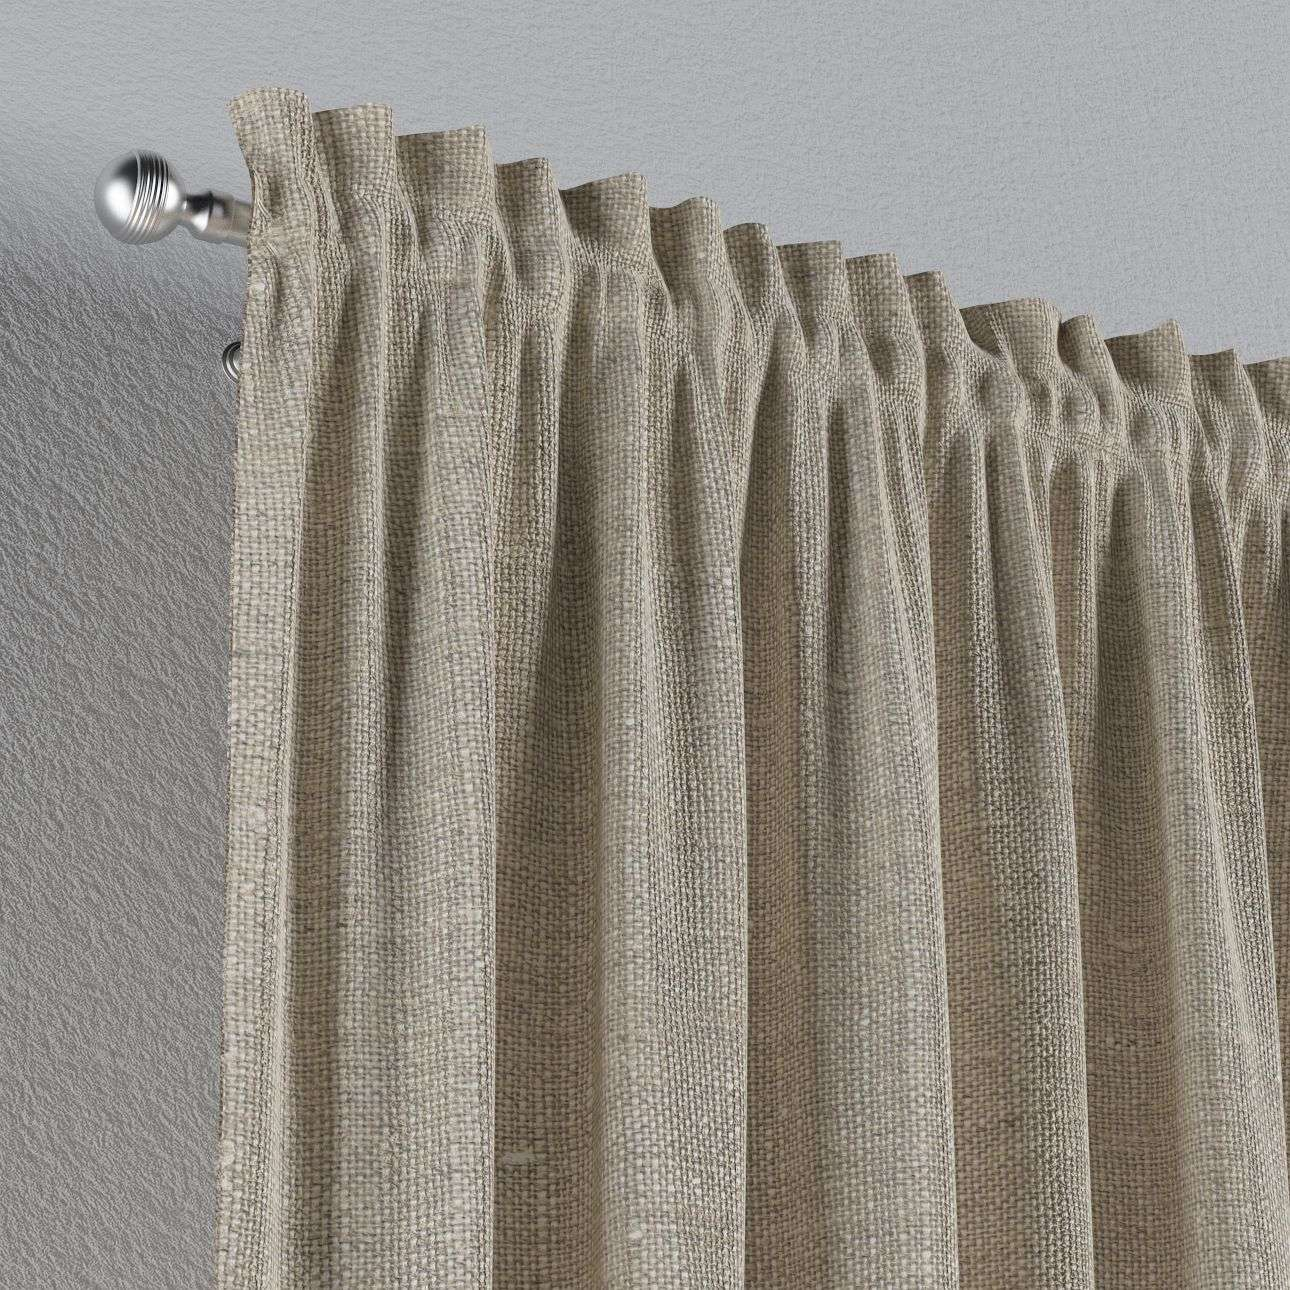 Slot and frill curtains 130 x 260 cm (51 x 102 inch) in collection Linen, fabric: 392-05